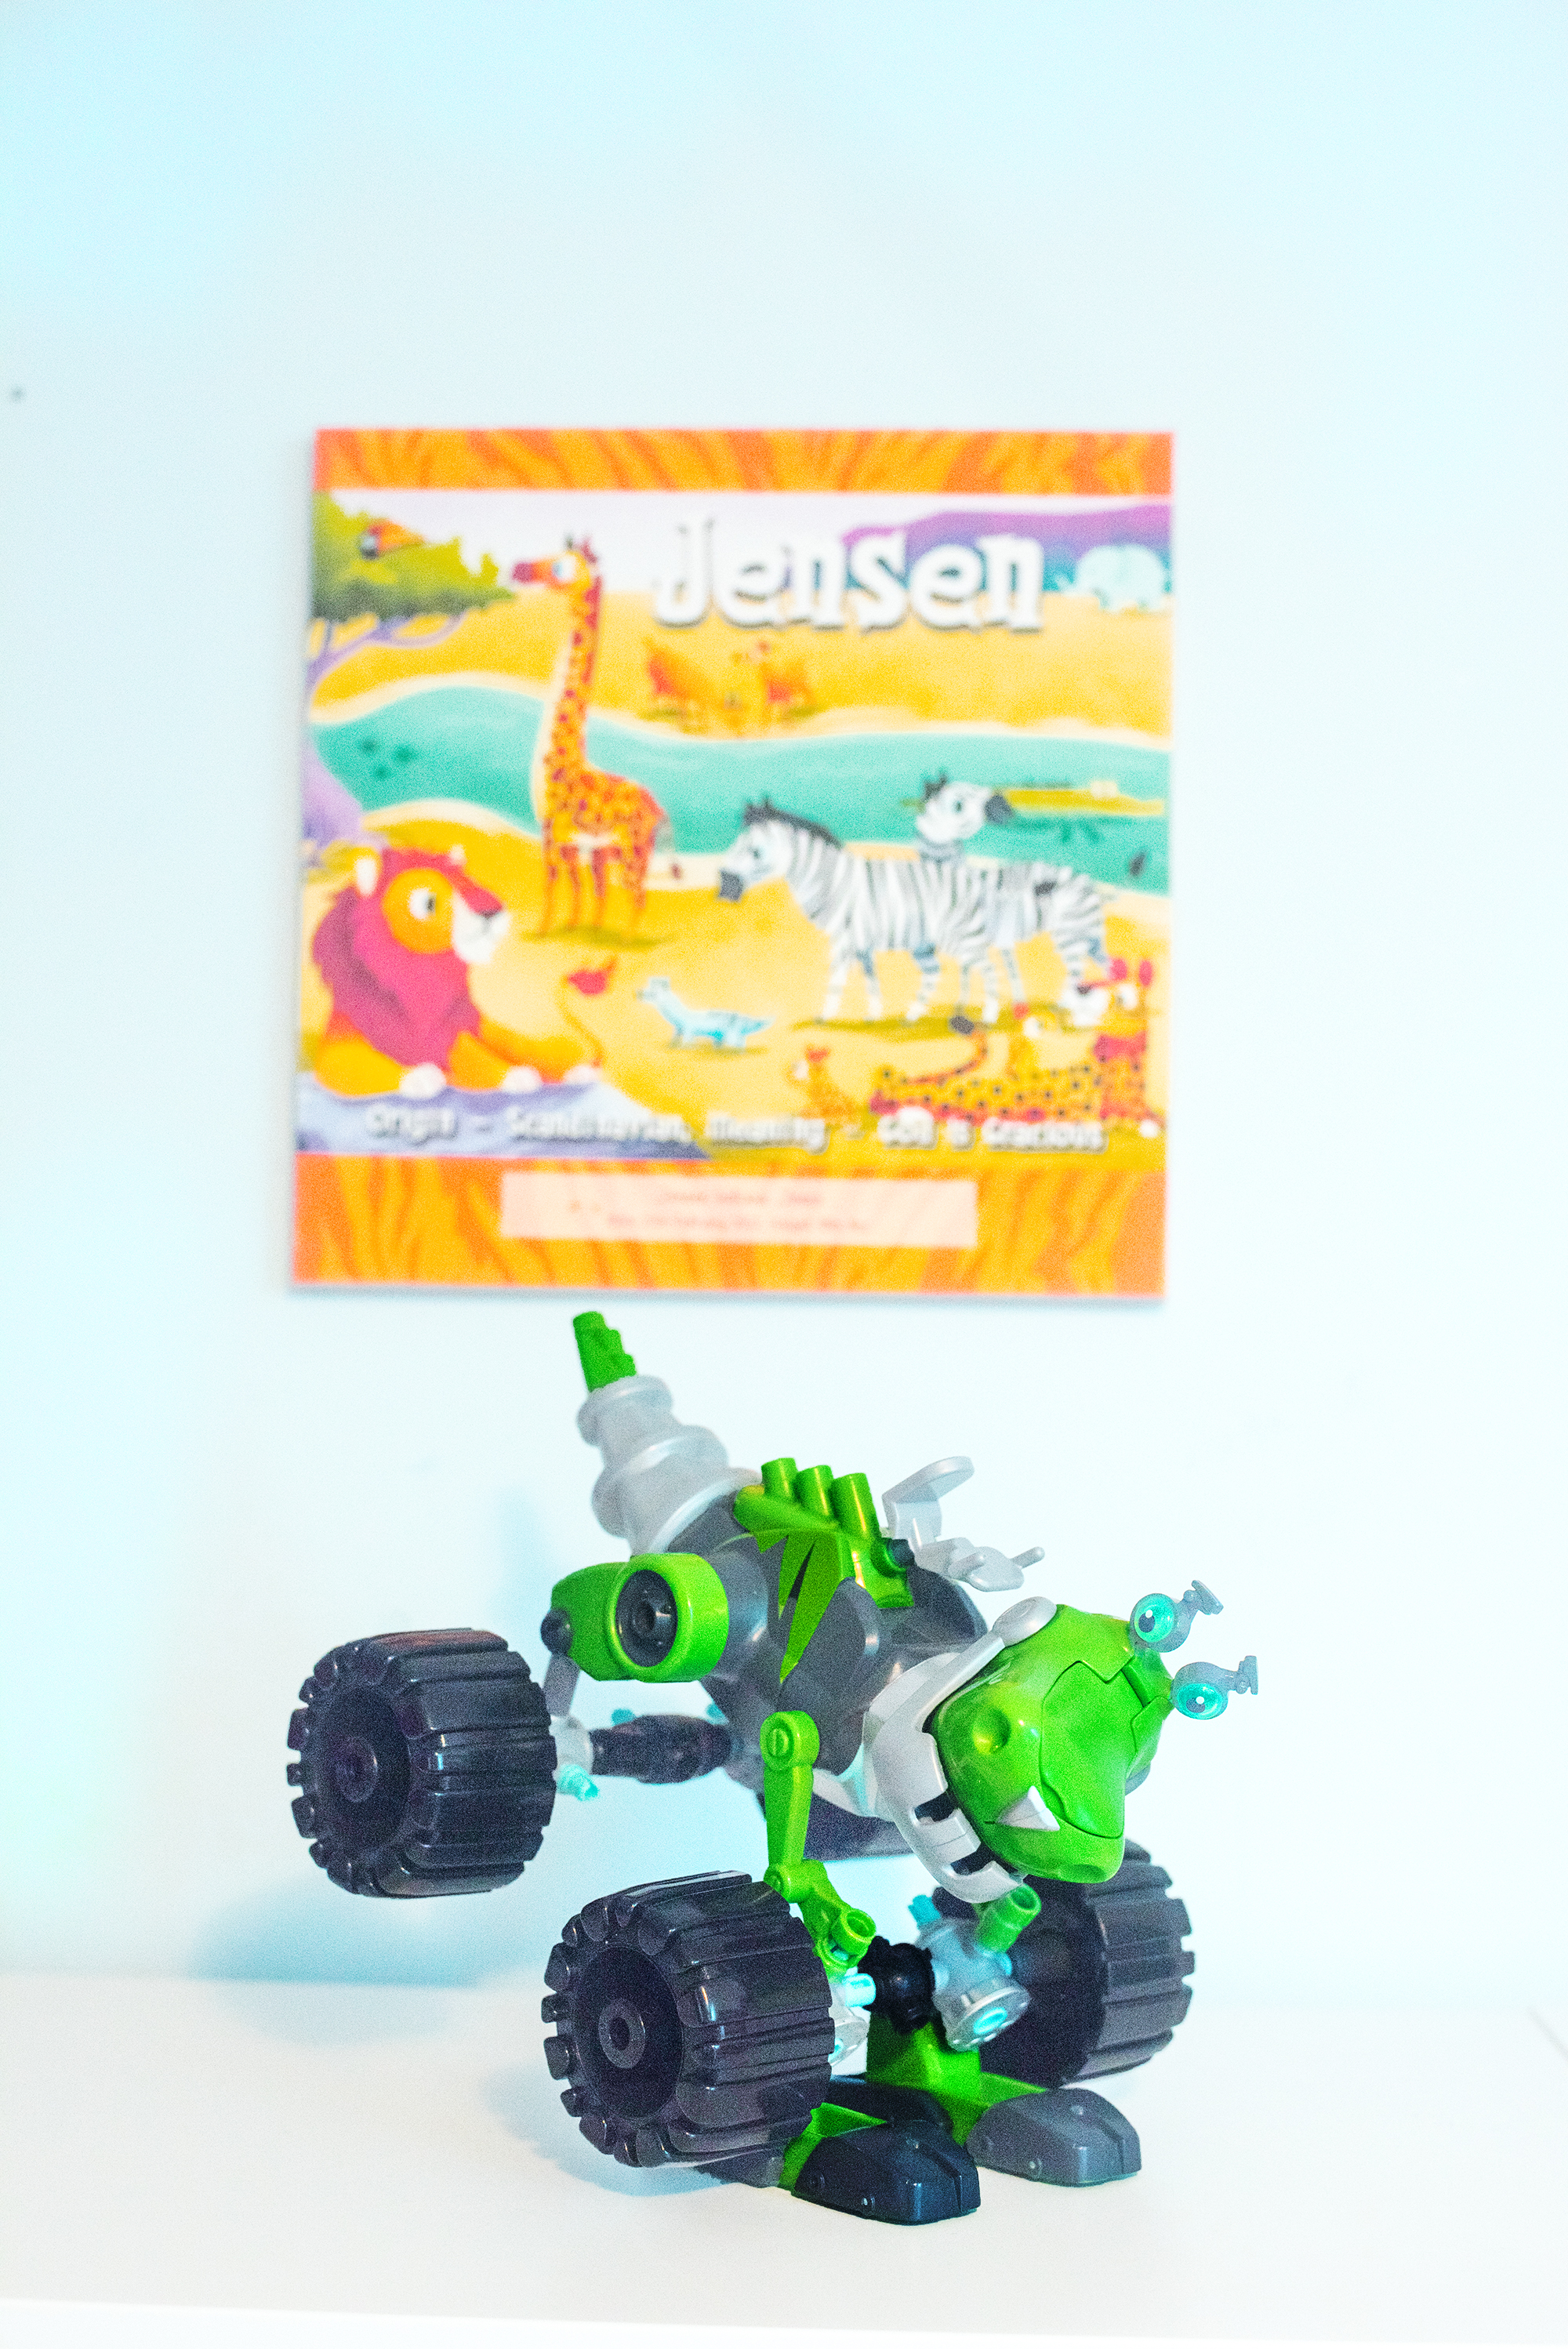 Rusty Rivets Botosaur Toy Dinosaur